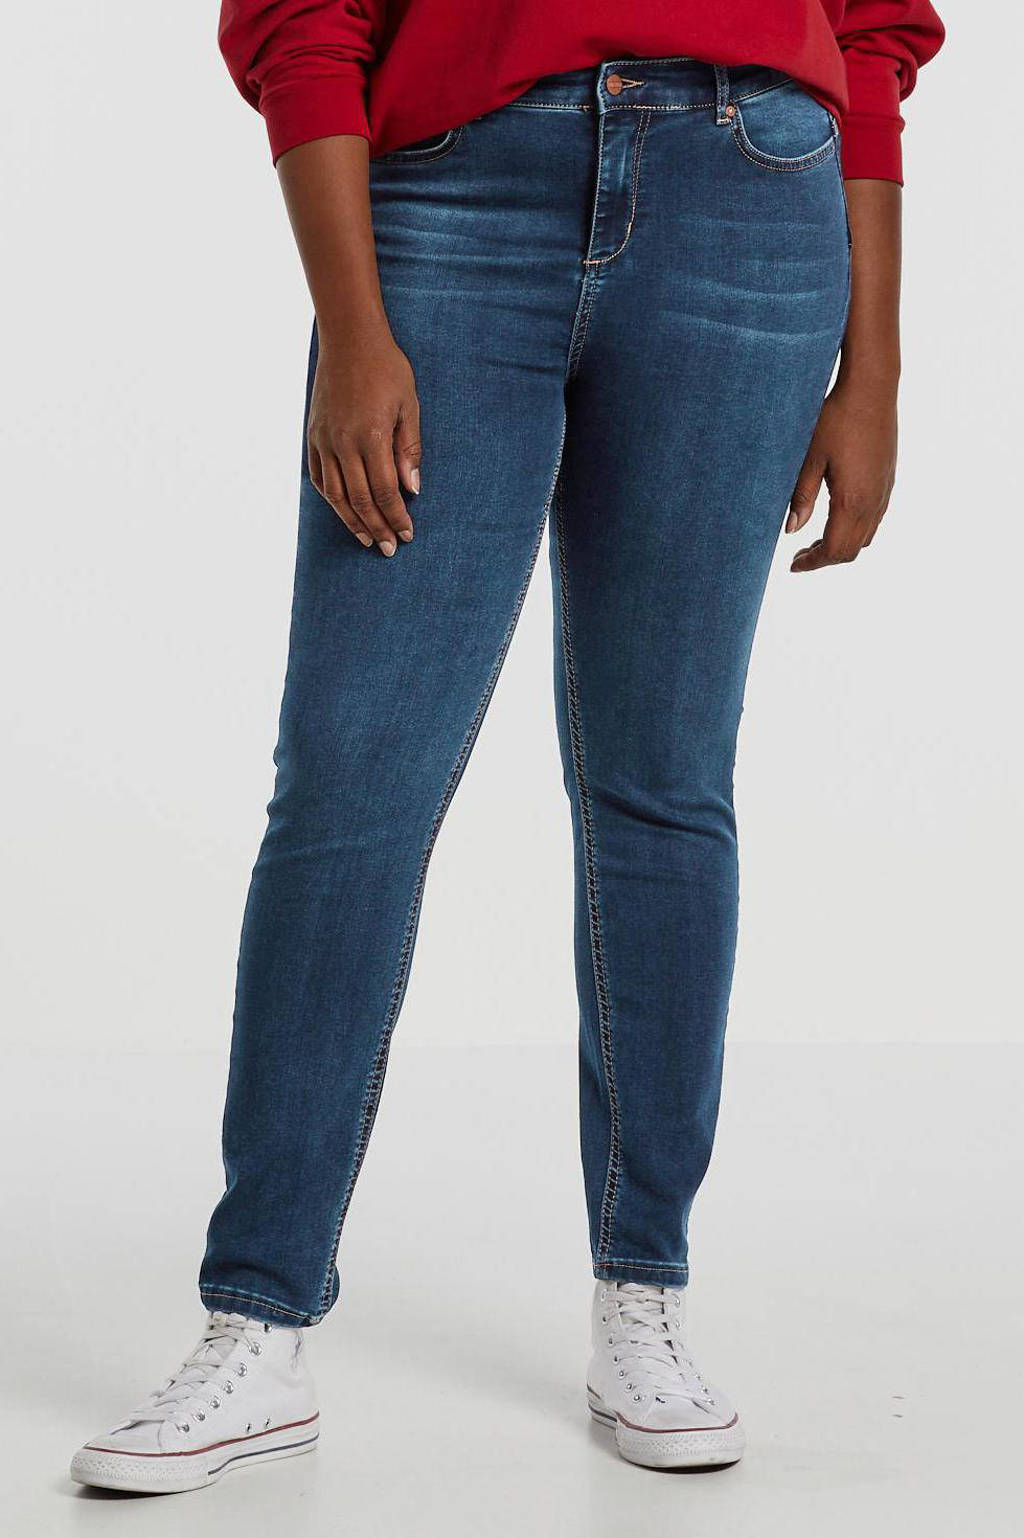 Yesta push-up slim fit jeans Joya blauw, Blauw